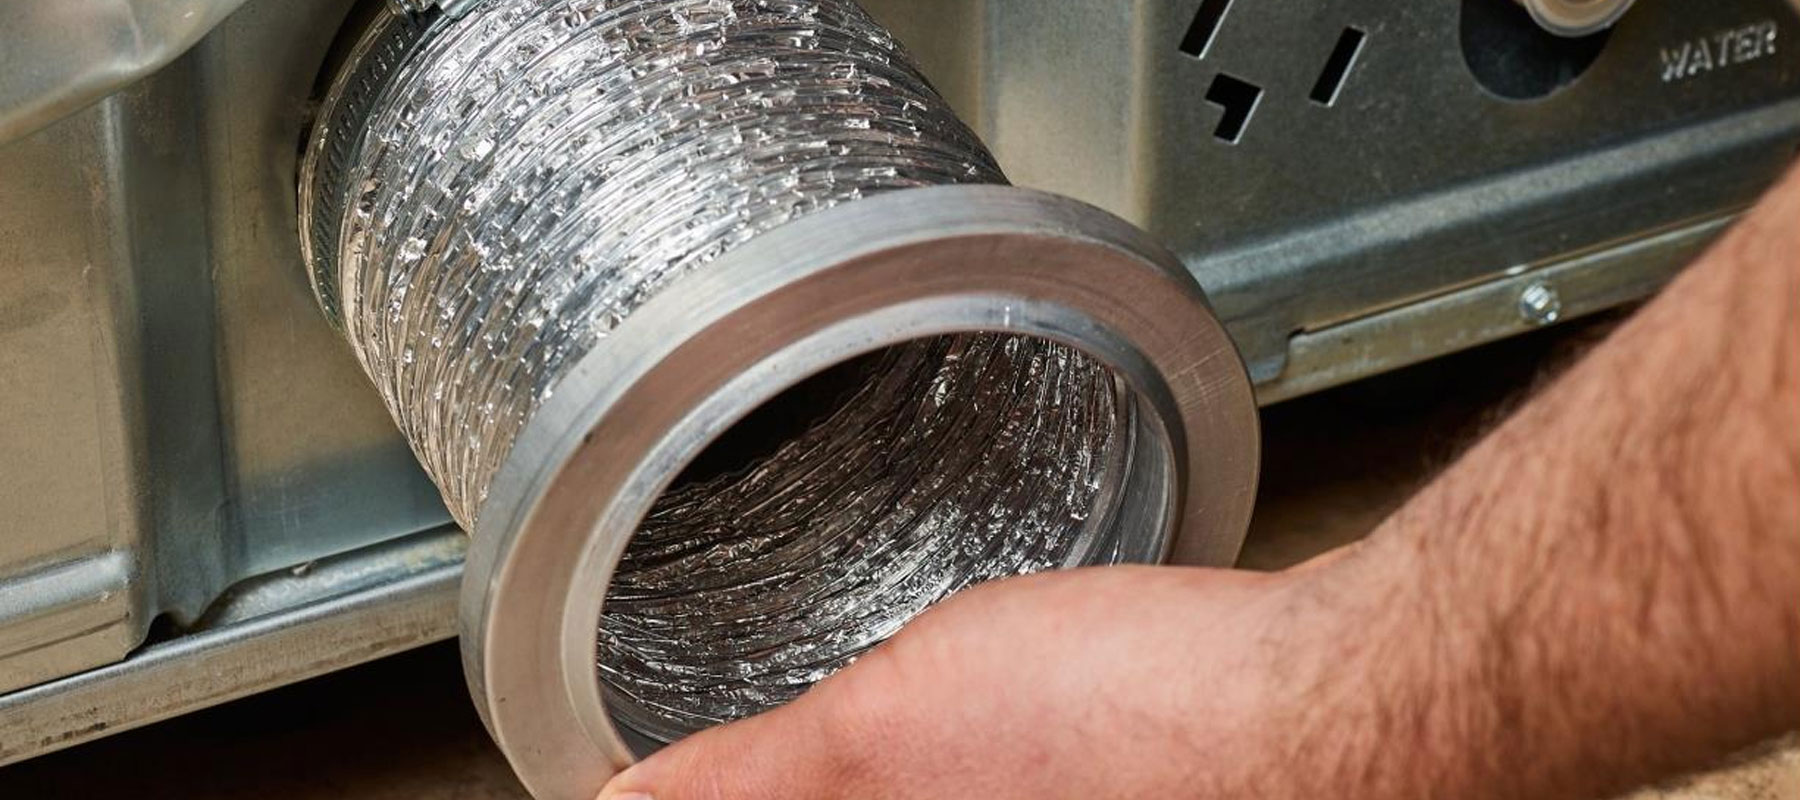 Dryer Vent Cover & Cap Replacement  | Mr Duct Cleaner